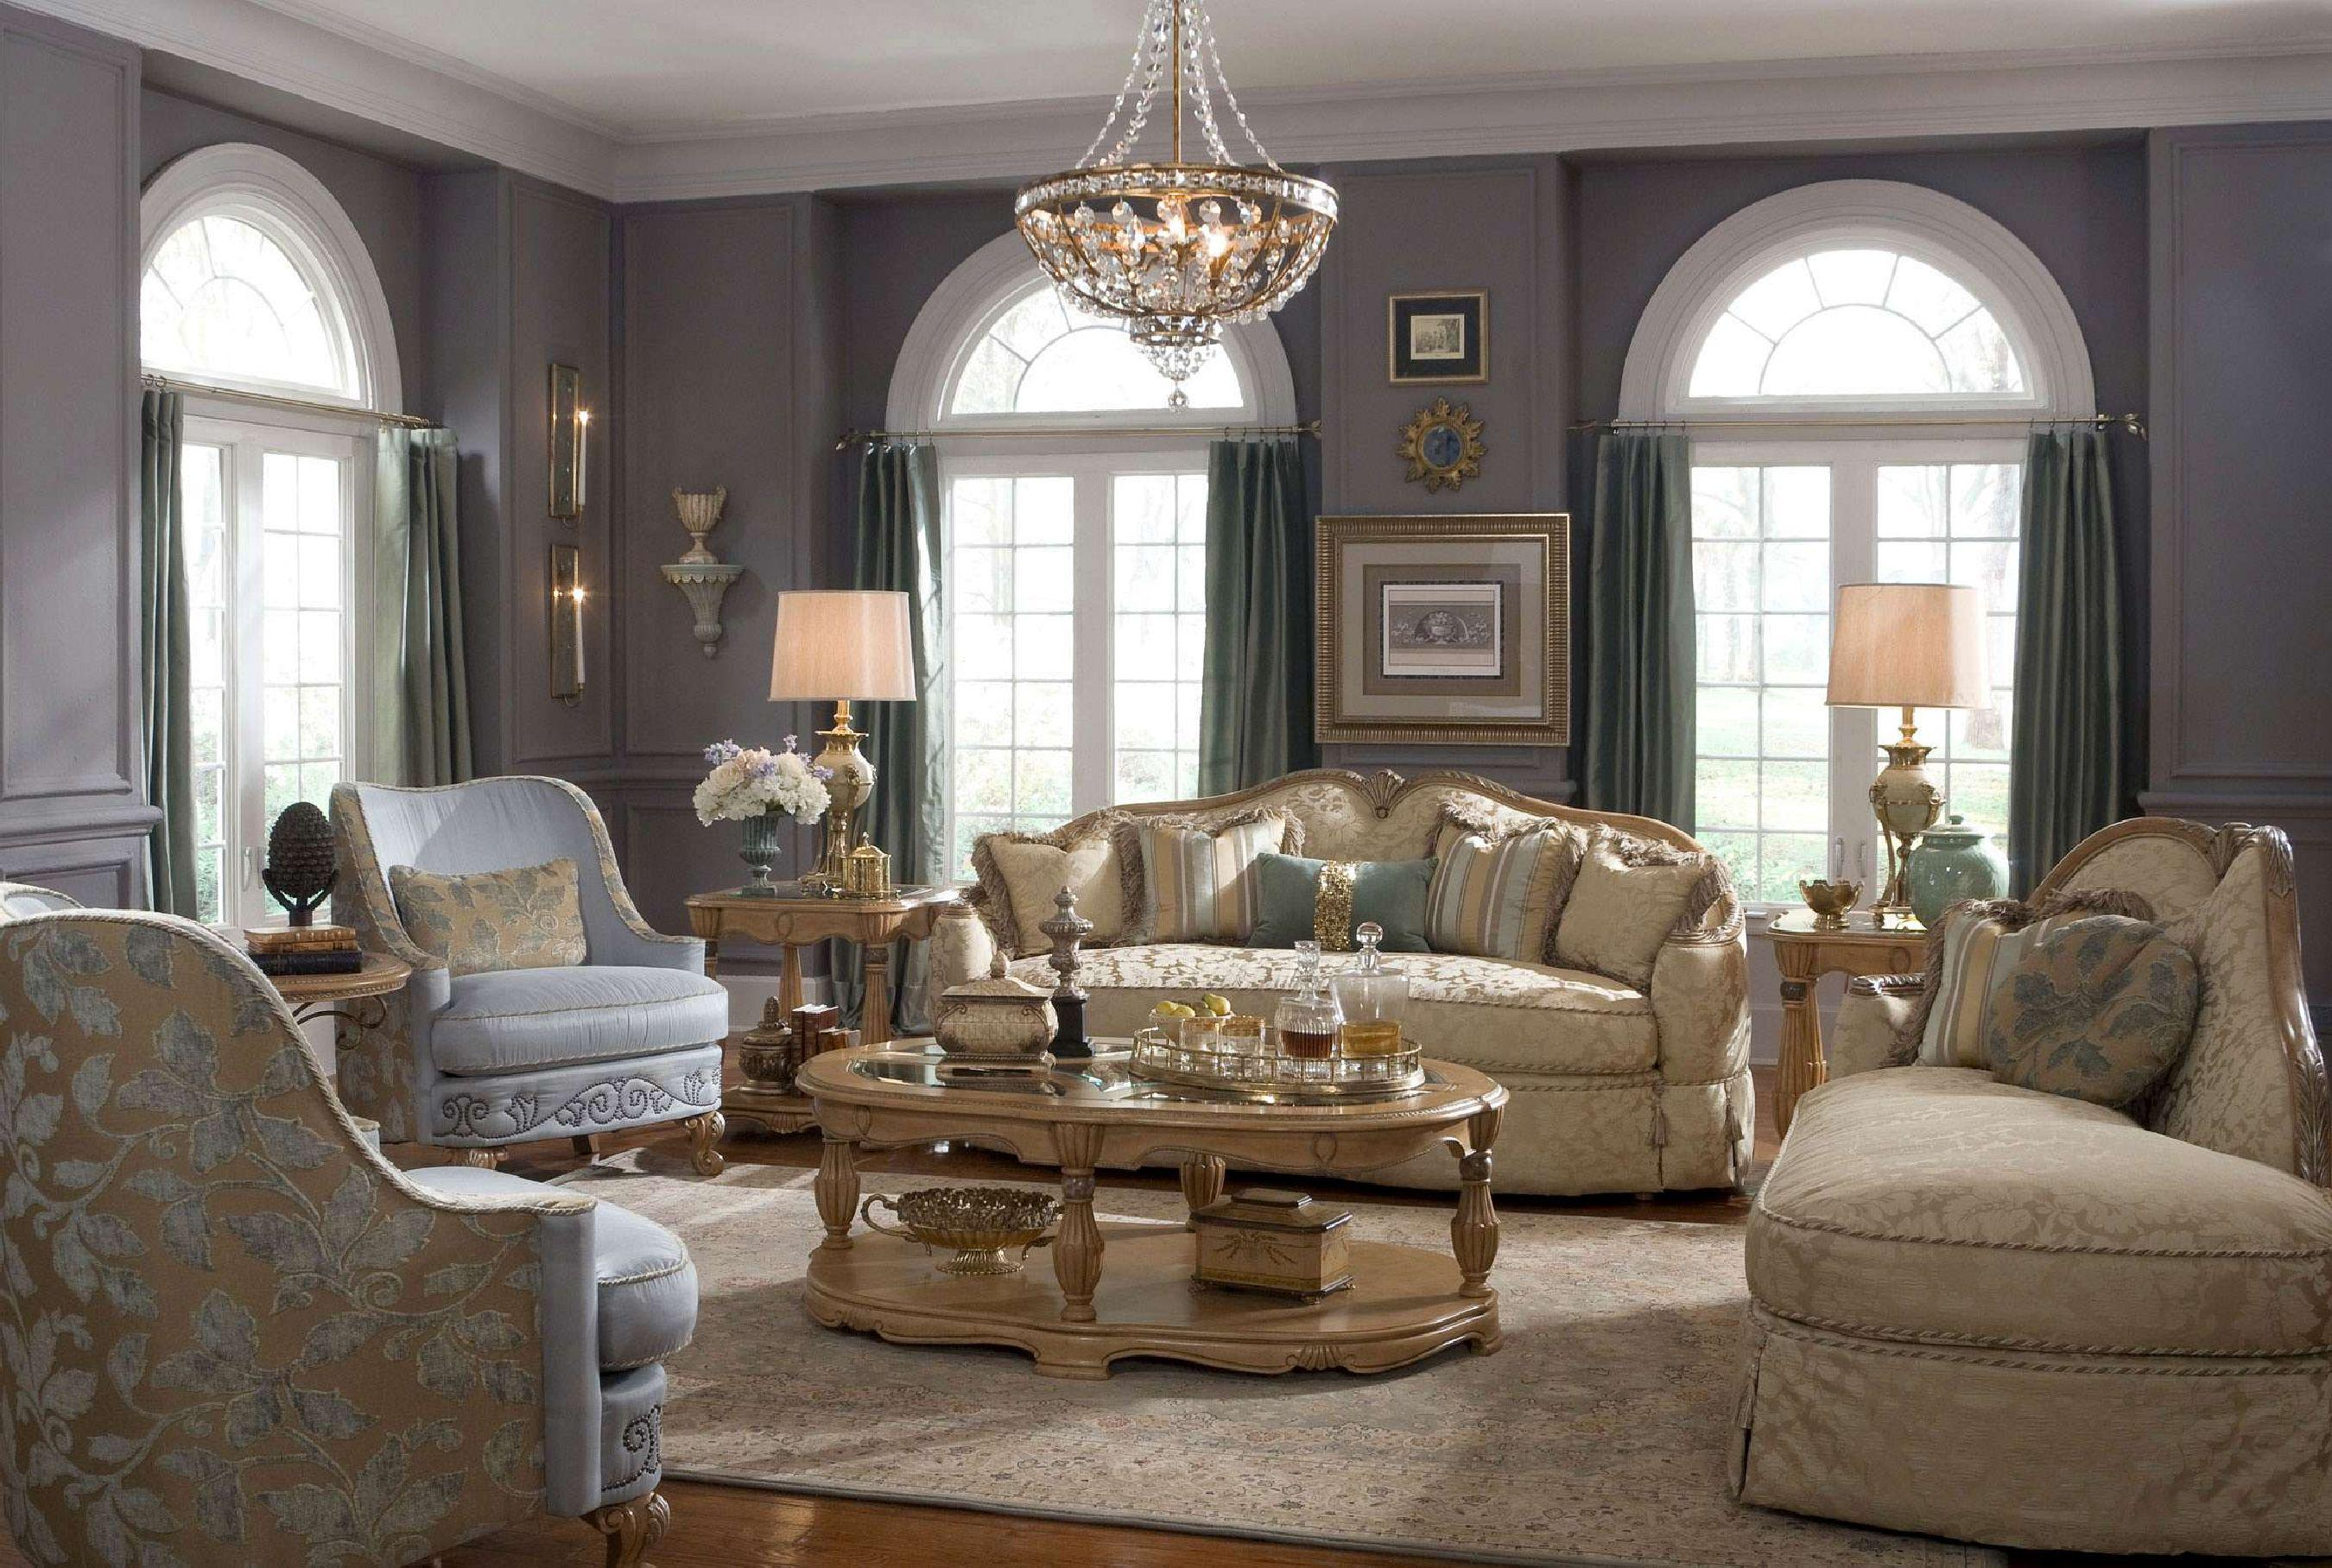 3 Benefits Of Decorating Your Home With Antiques   3 Benefits Of Decorating Your Home With Antiques